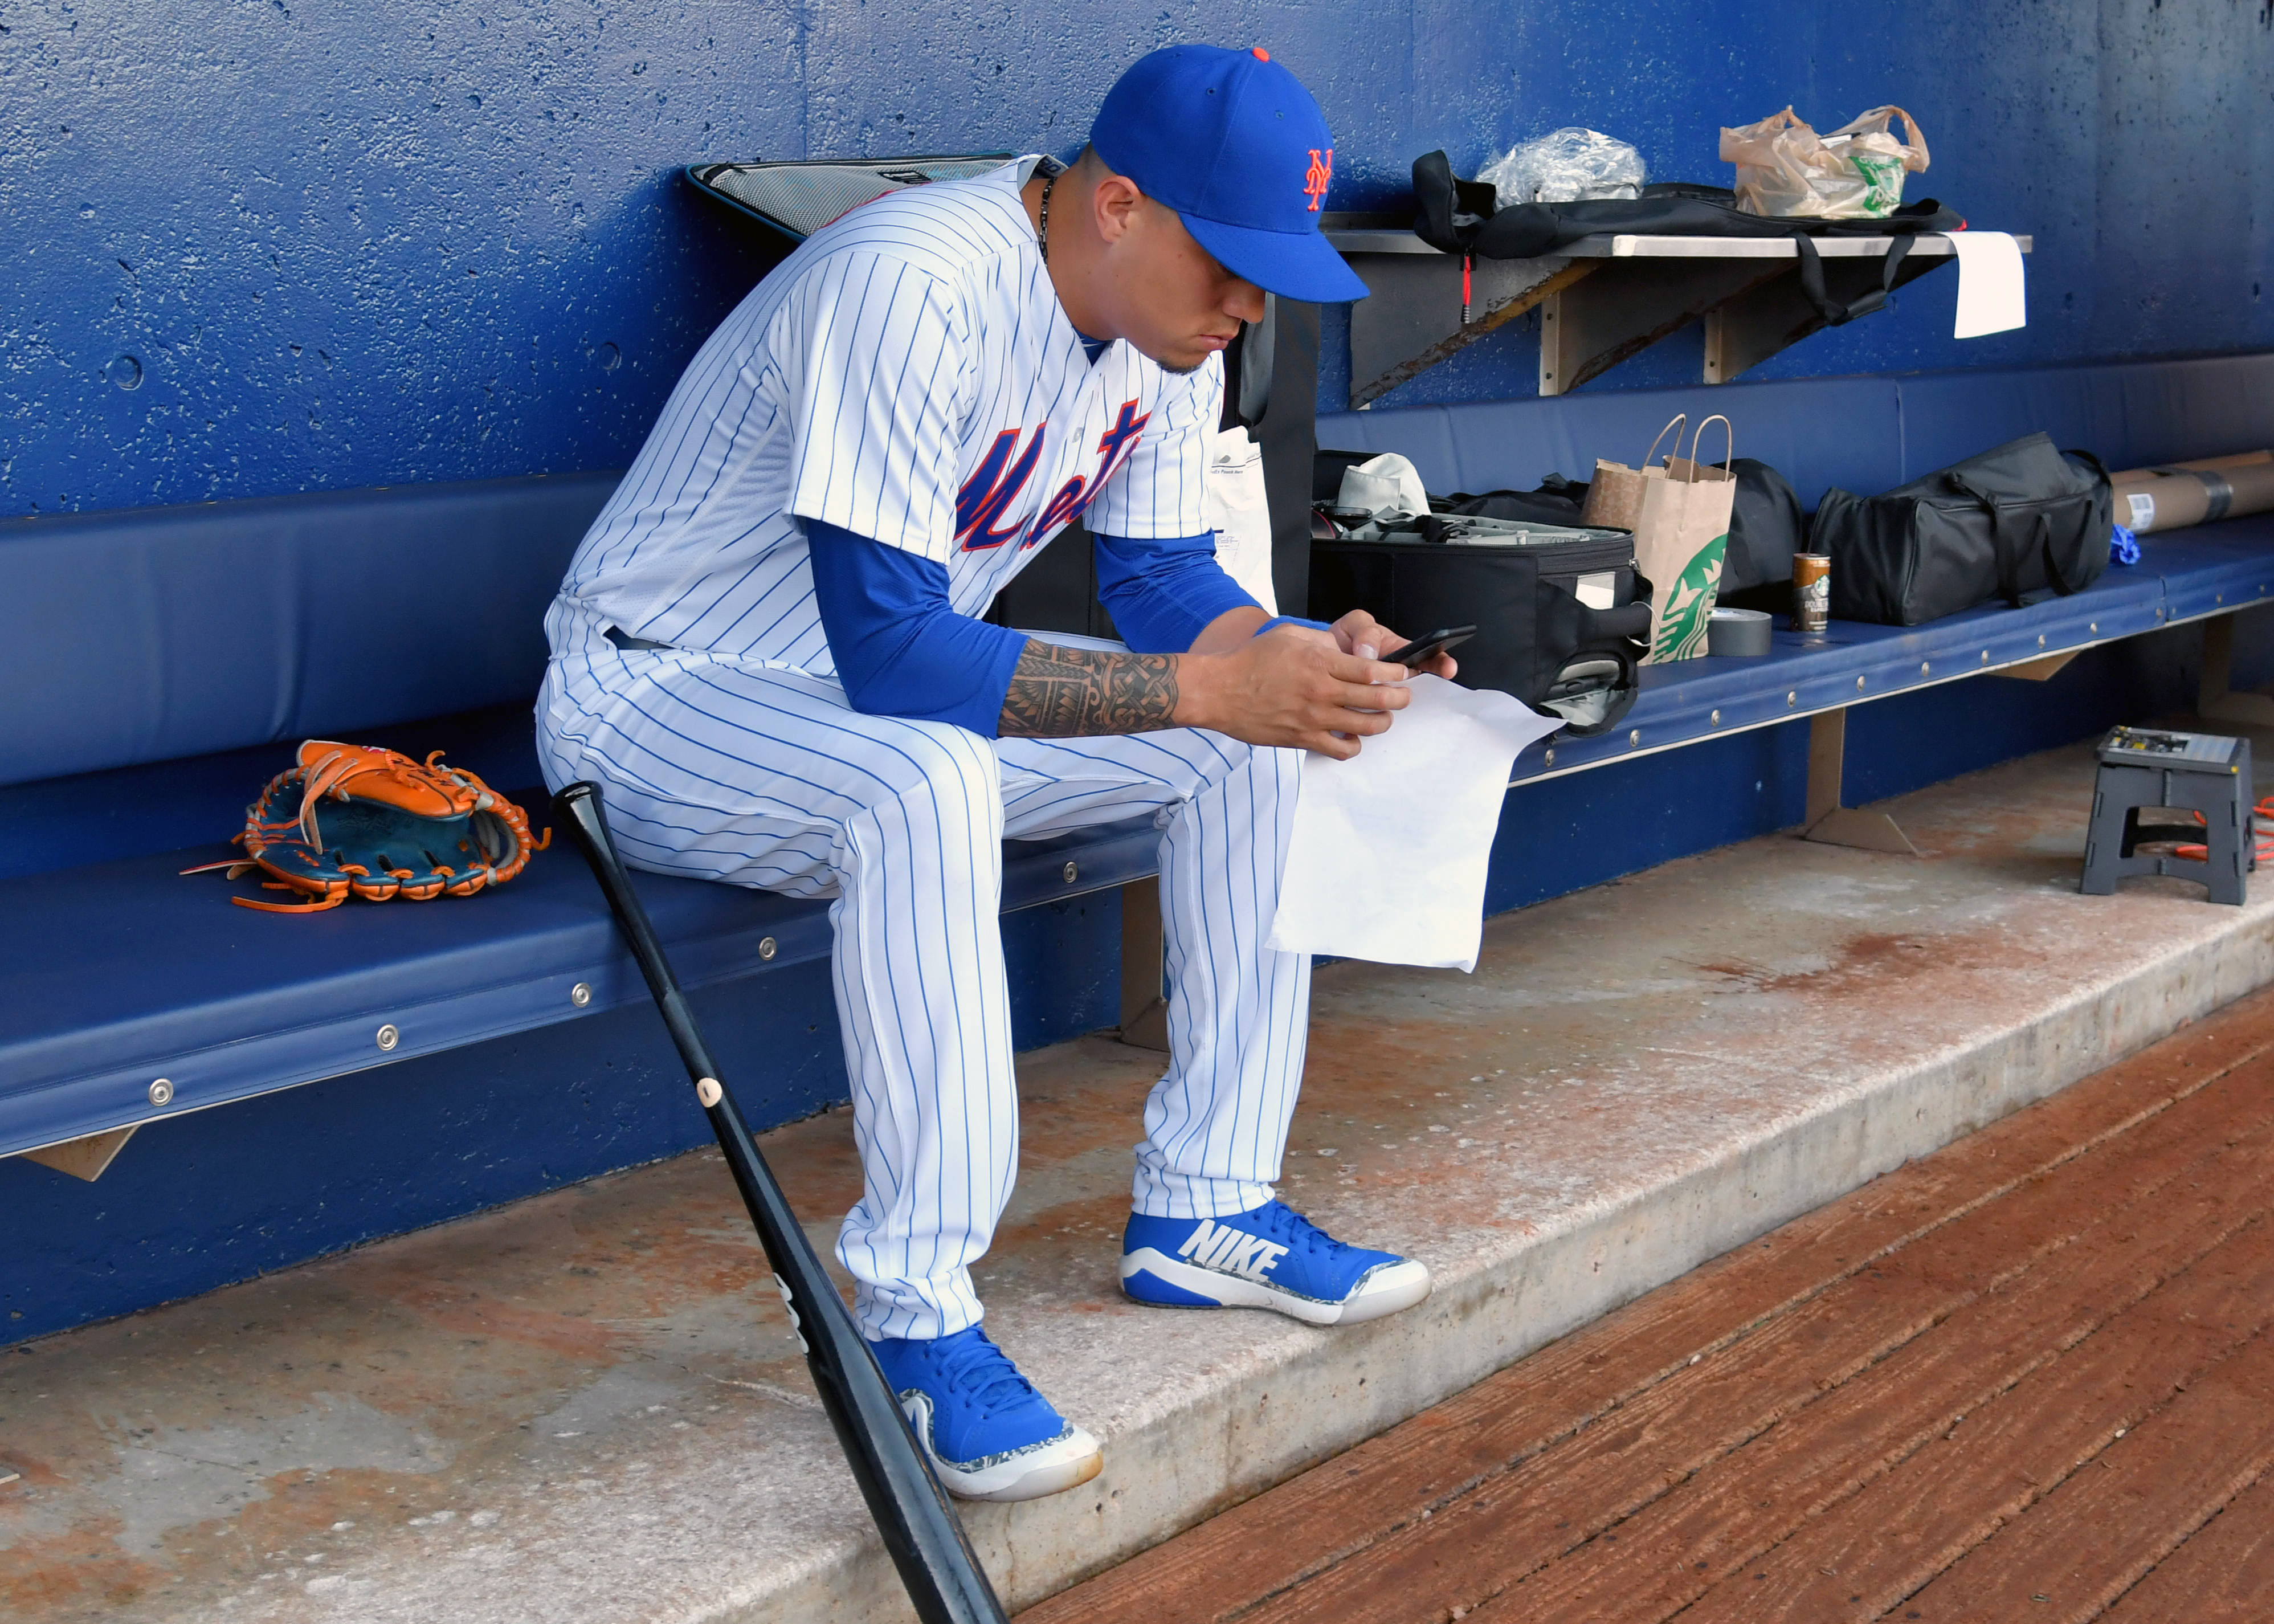 MLB: New York Mets-Media Day